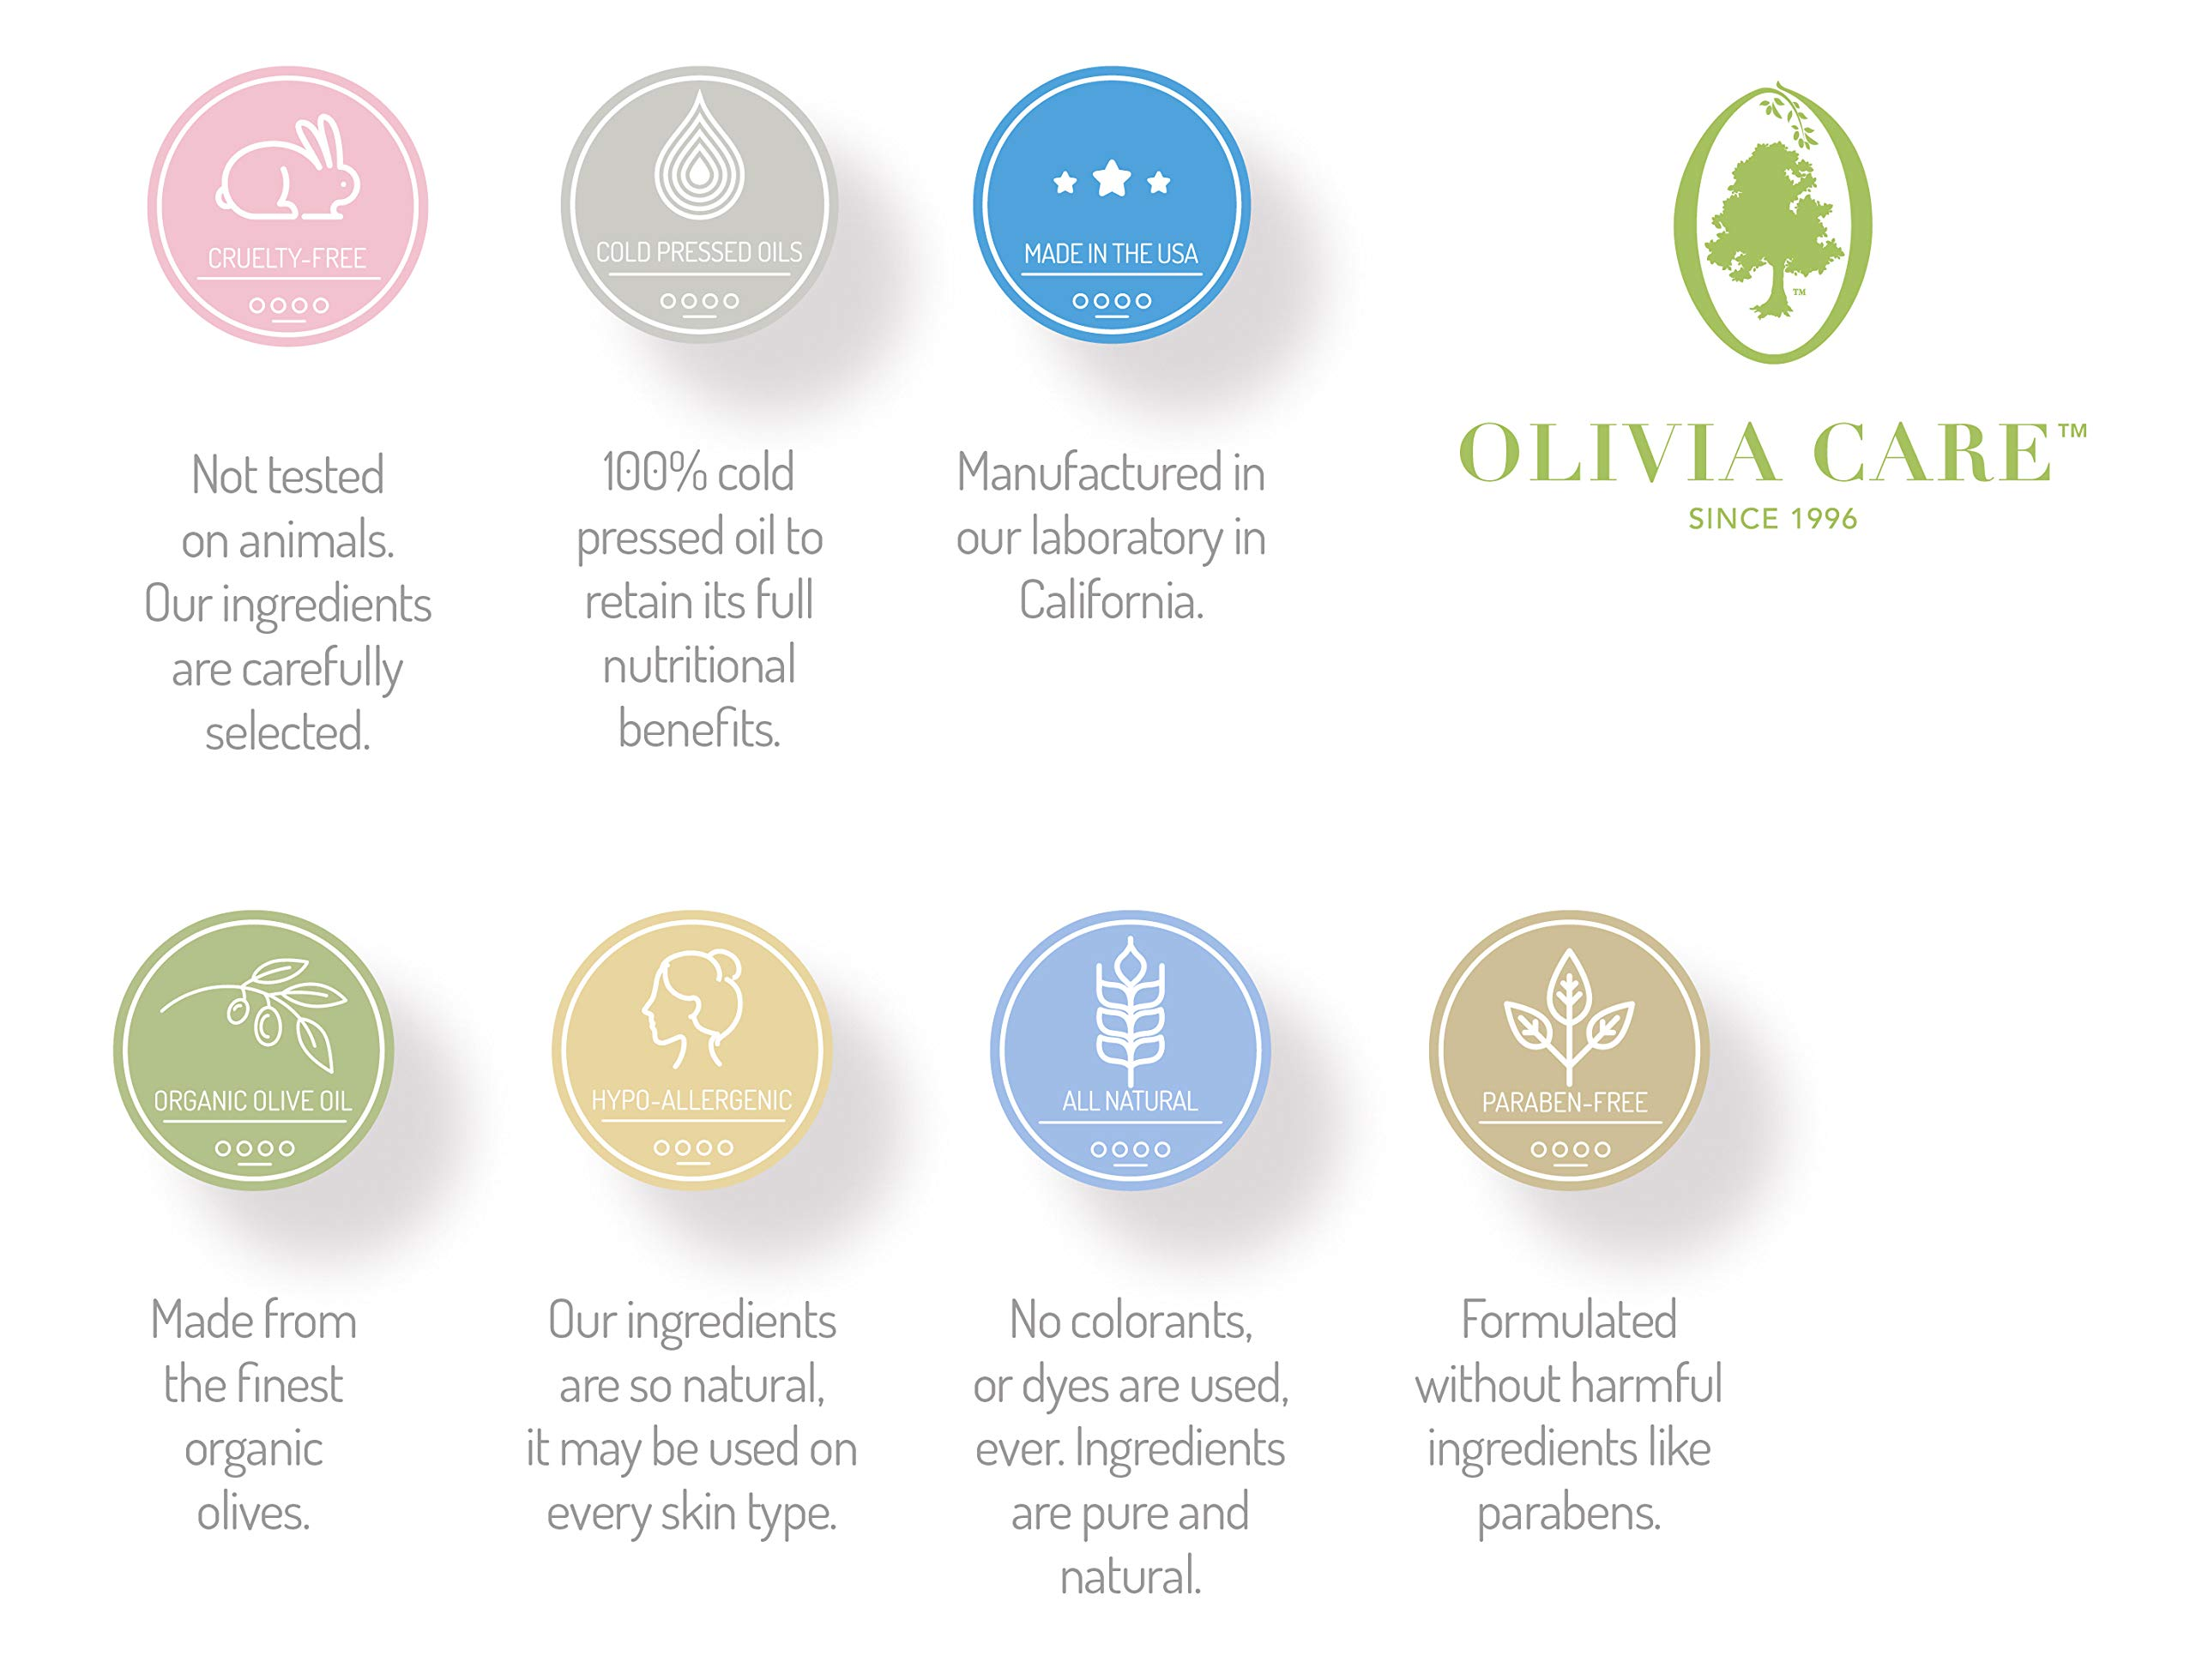 OLIVIA CARE Body Oils, Flavors: Apricot Fig, French Rose, Jasmine Gardenia -All Natural Perfume Fragrance & Body Oil Moisturizer, Rich in Vitamin E, K, Omega fatty Acids (French Rose) by Olivia Care